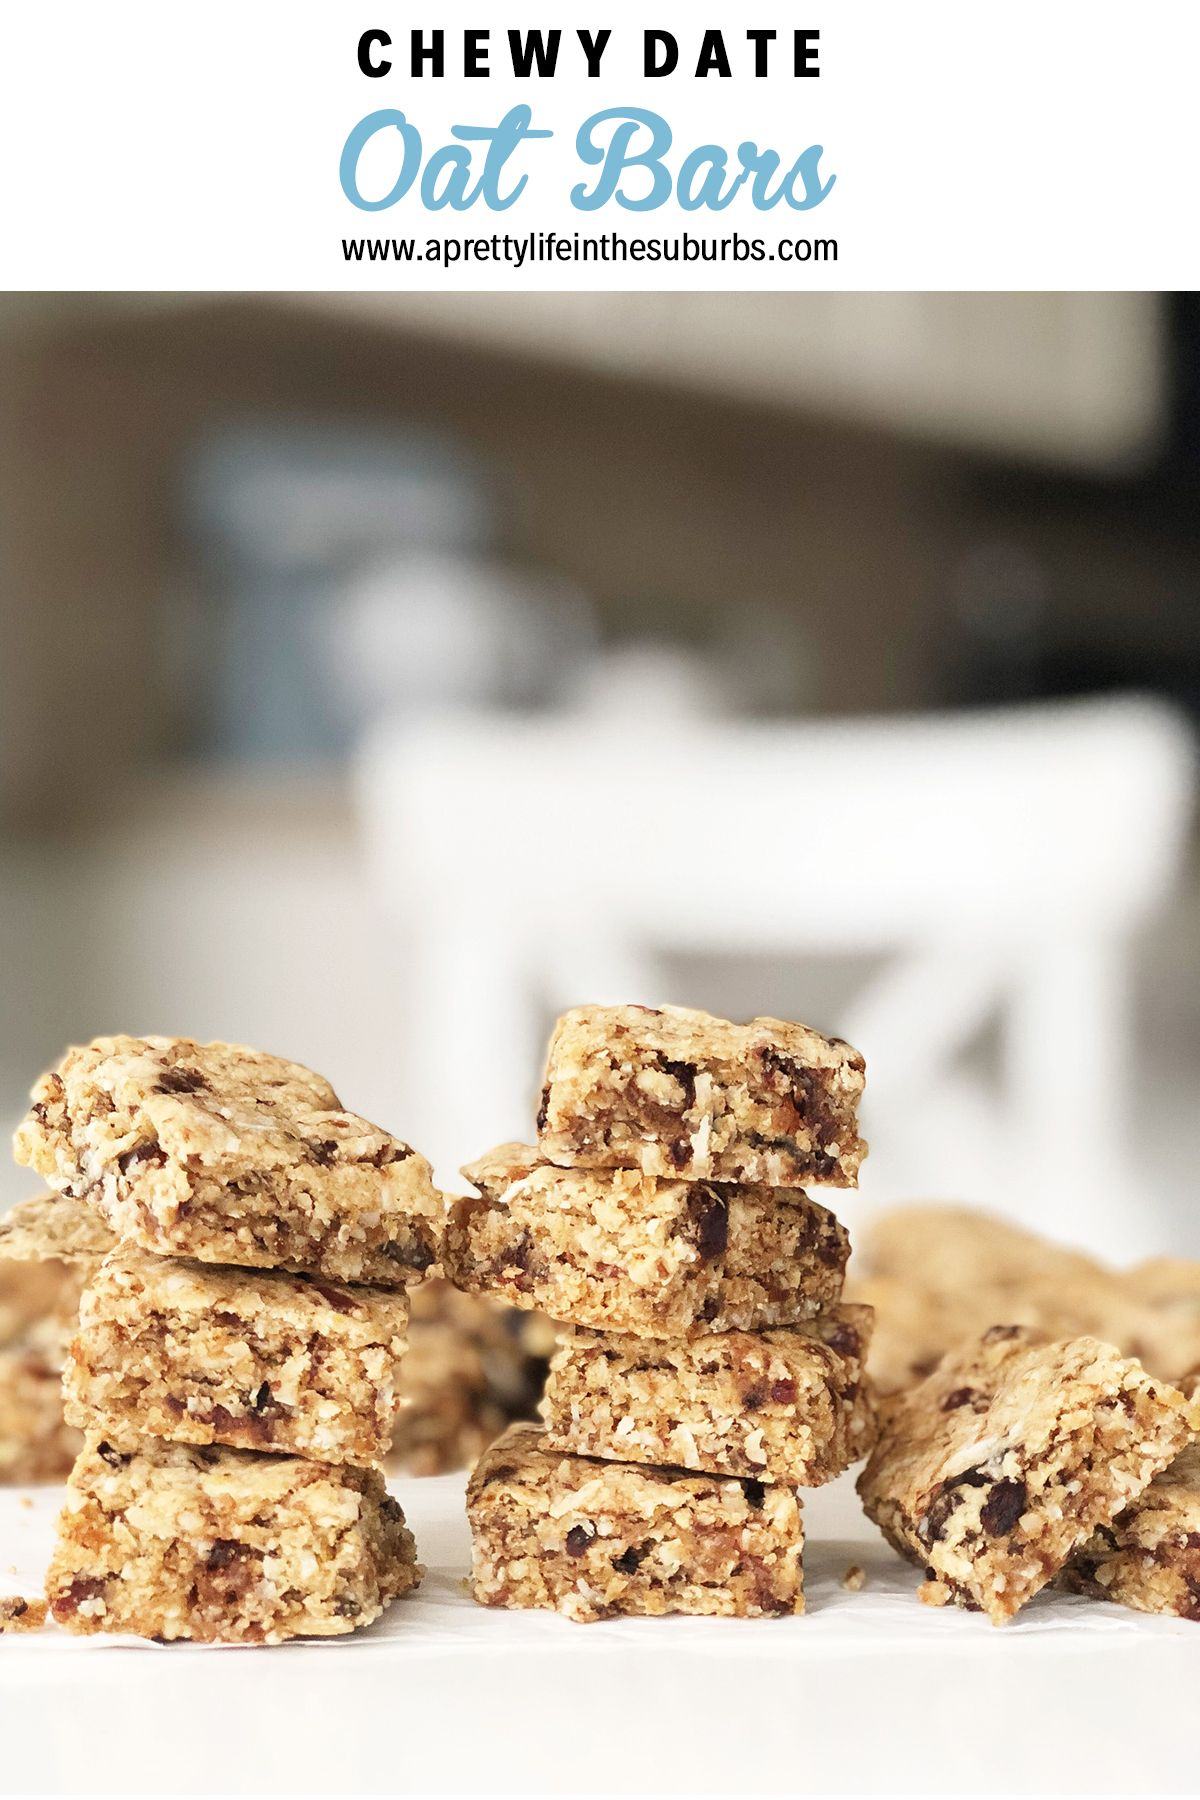 These Chewy Date Oat Bars Are Packed Full Of Dates Prunes Dried Fruit Coconut Almonds And Oats A Del Oat Bars Oatmeal Chocolate Chip Bars Oat Bar Recipes